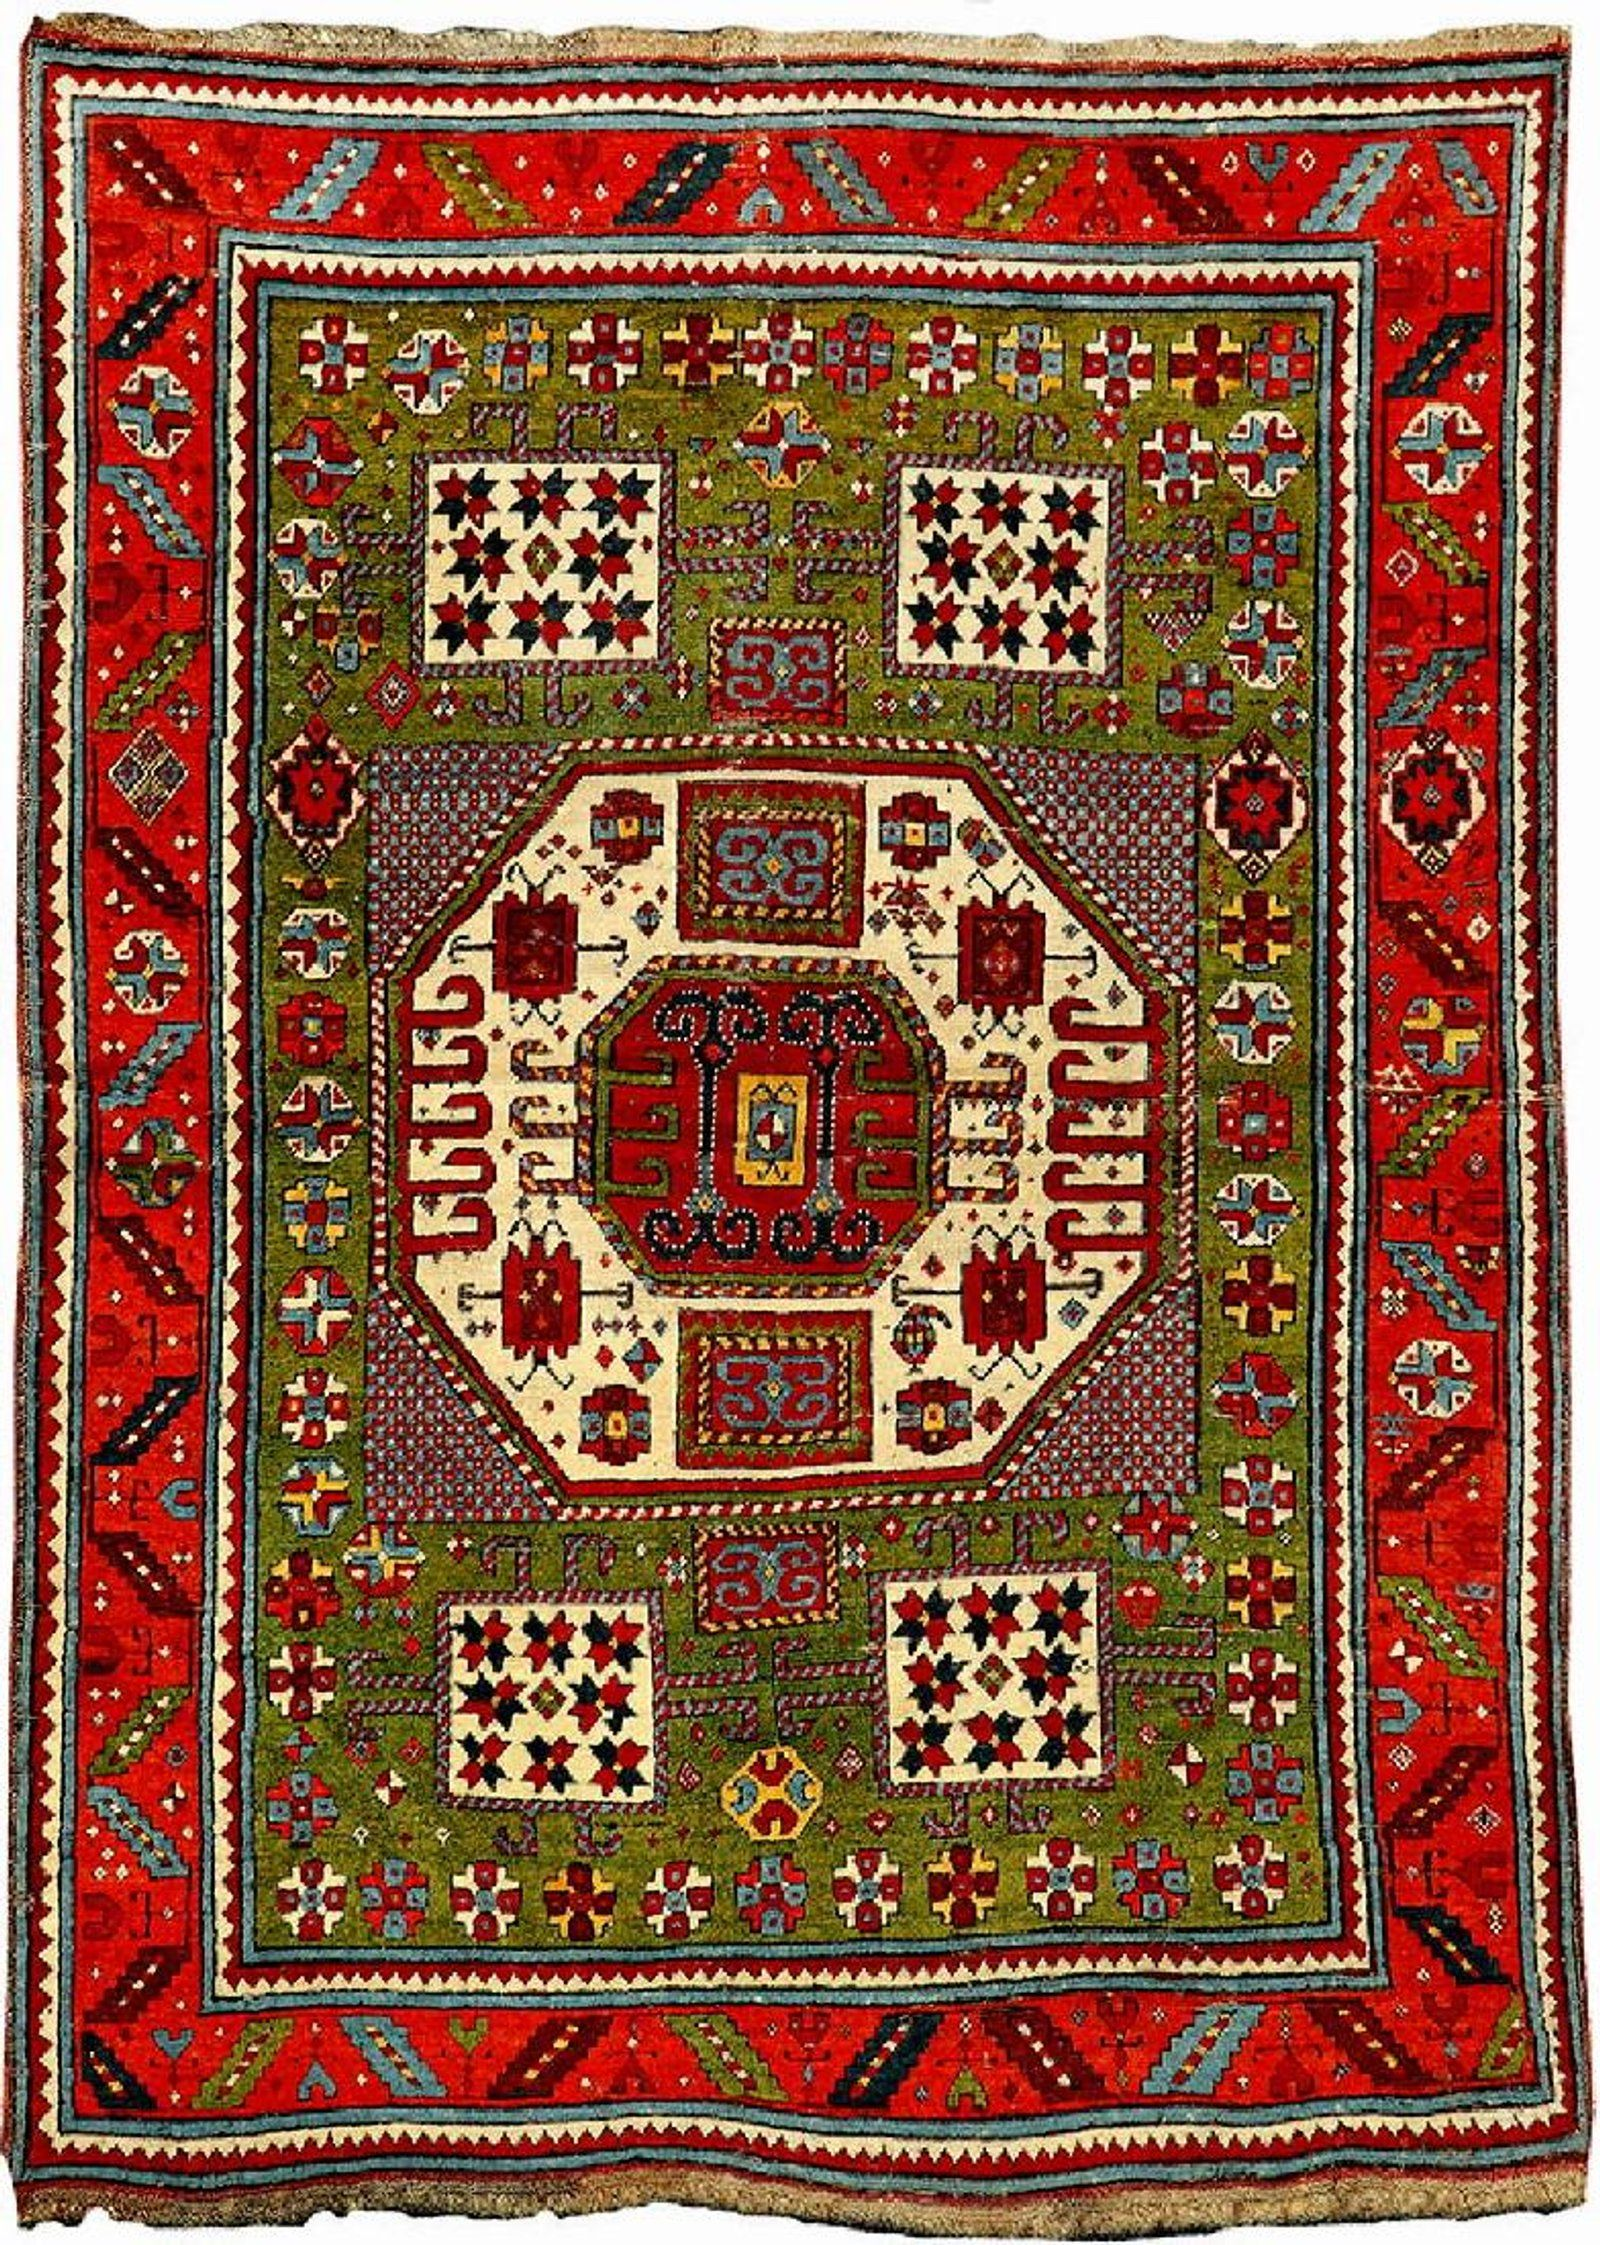 Unusual Green Ground Karachop Kazak Rug Jun 09 2018 Henry S Auktionshaus Ag In Germany Rugs Rugs On Carpet Area Rugs